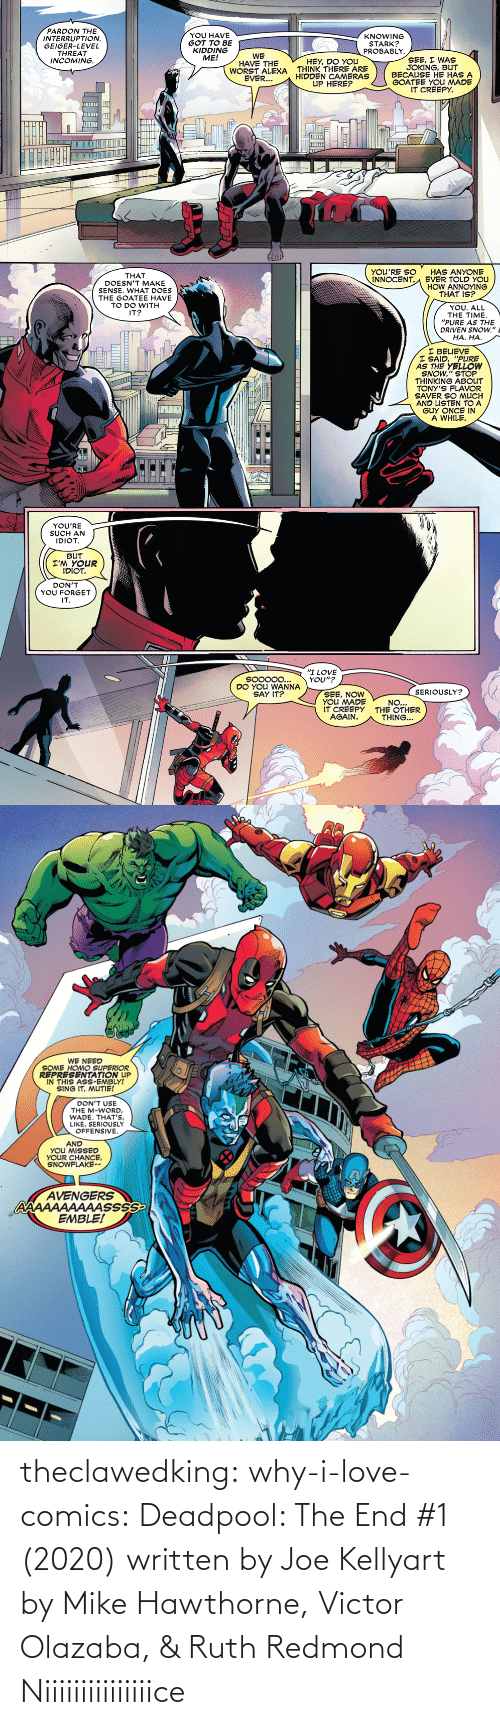 Deadpool: theclawedking: why-i-love-comics:   Deadpool: The End #1 (2020) written by Joe Kellyart by Mike Hawthorne, Victor Olazaba, & Ruth Redmond    Niiiiiiiiiiiiiiice